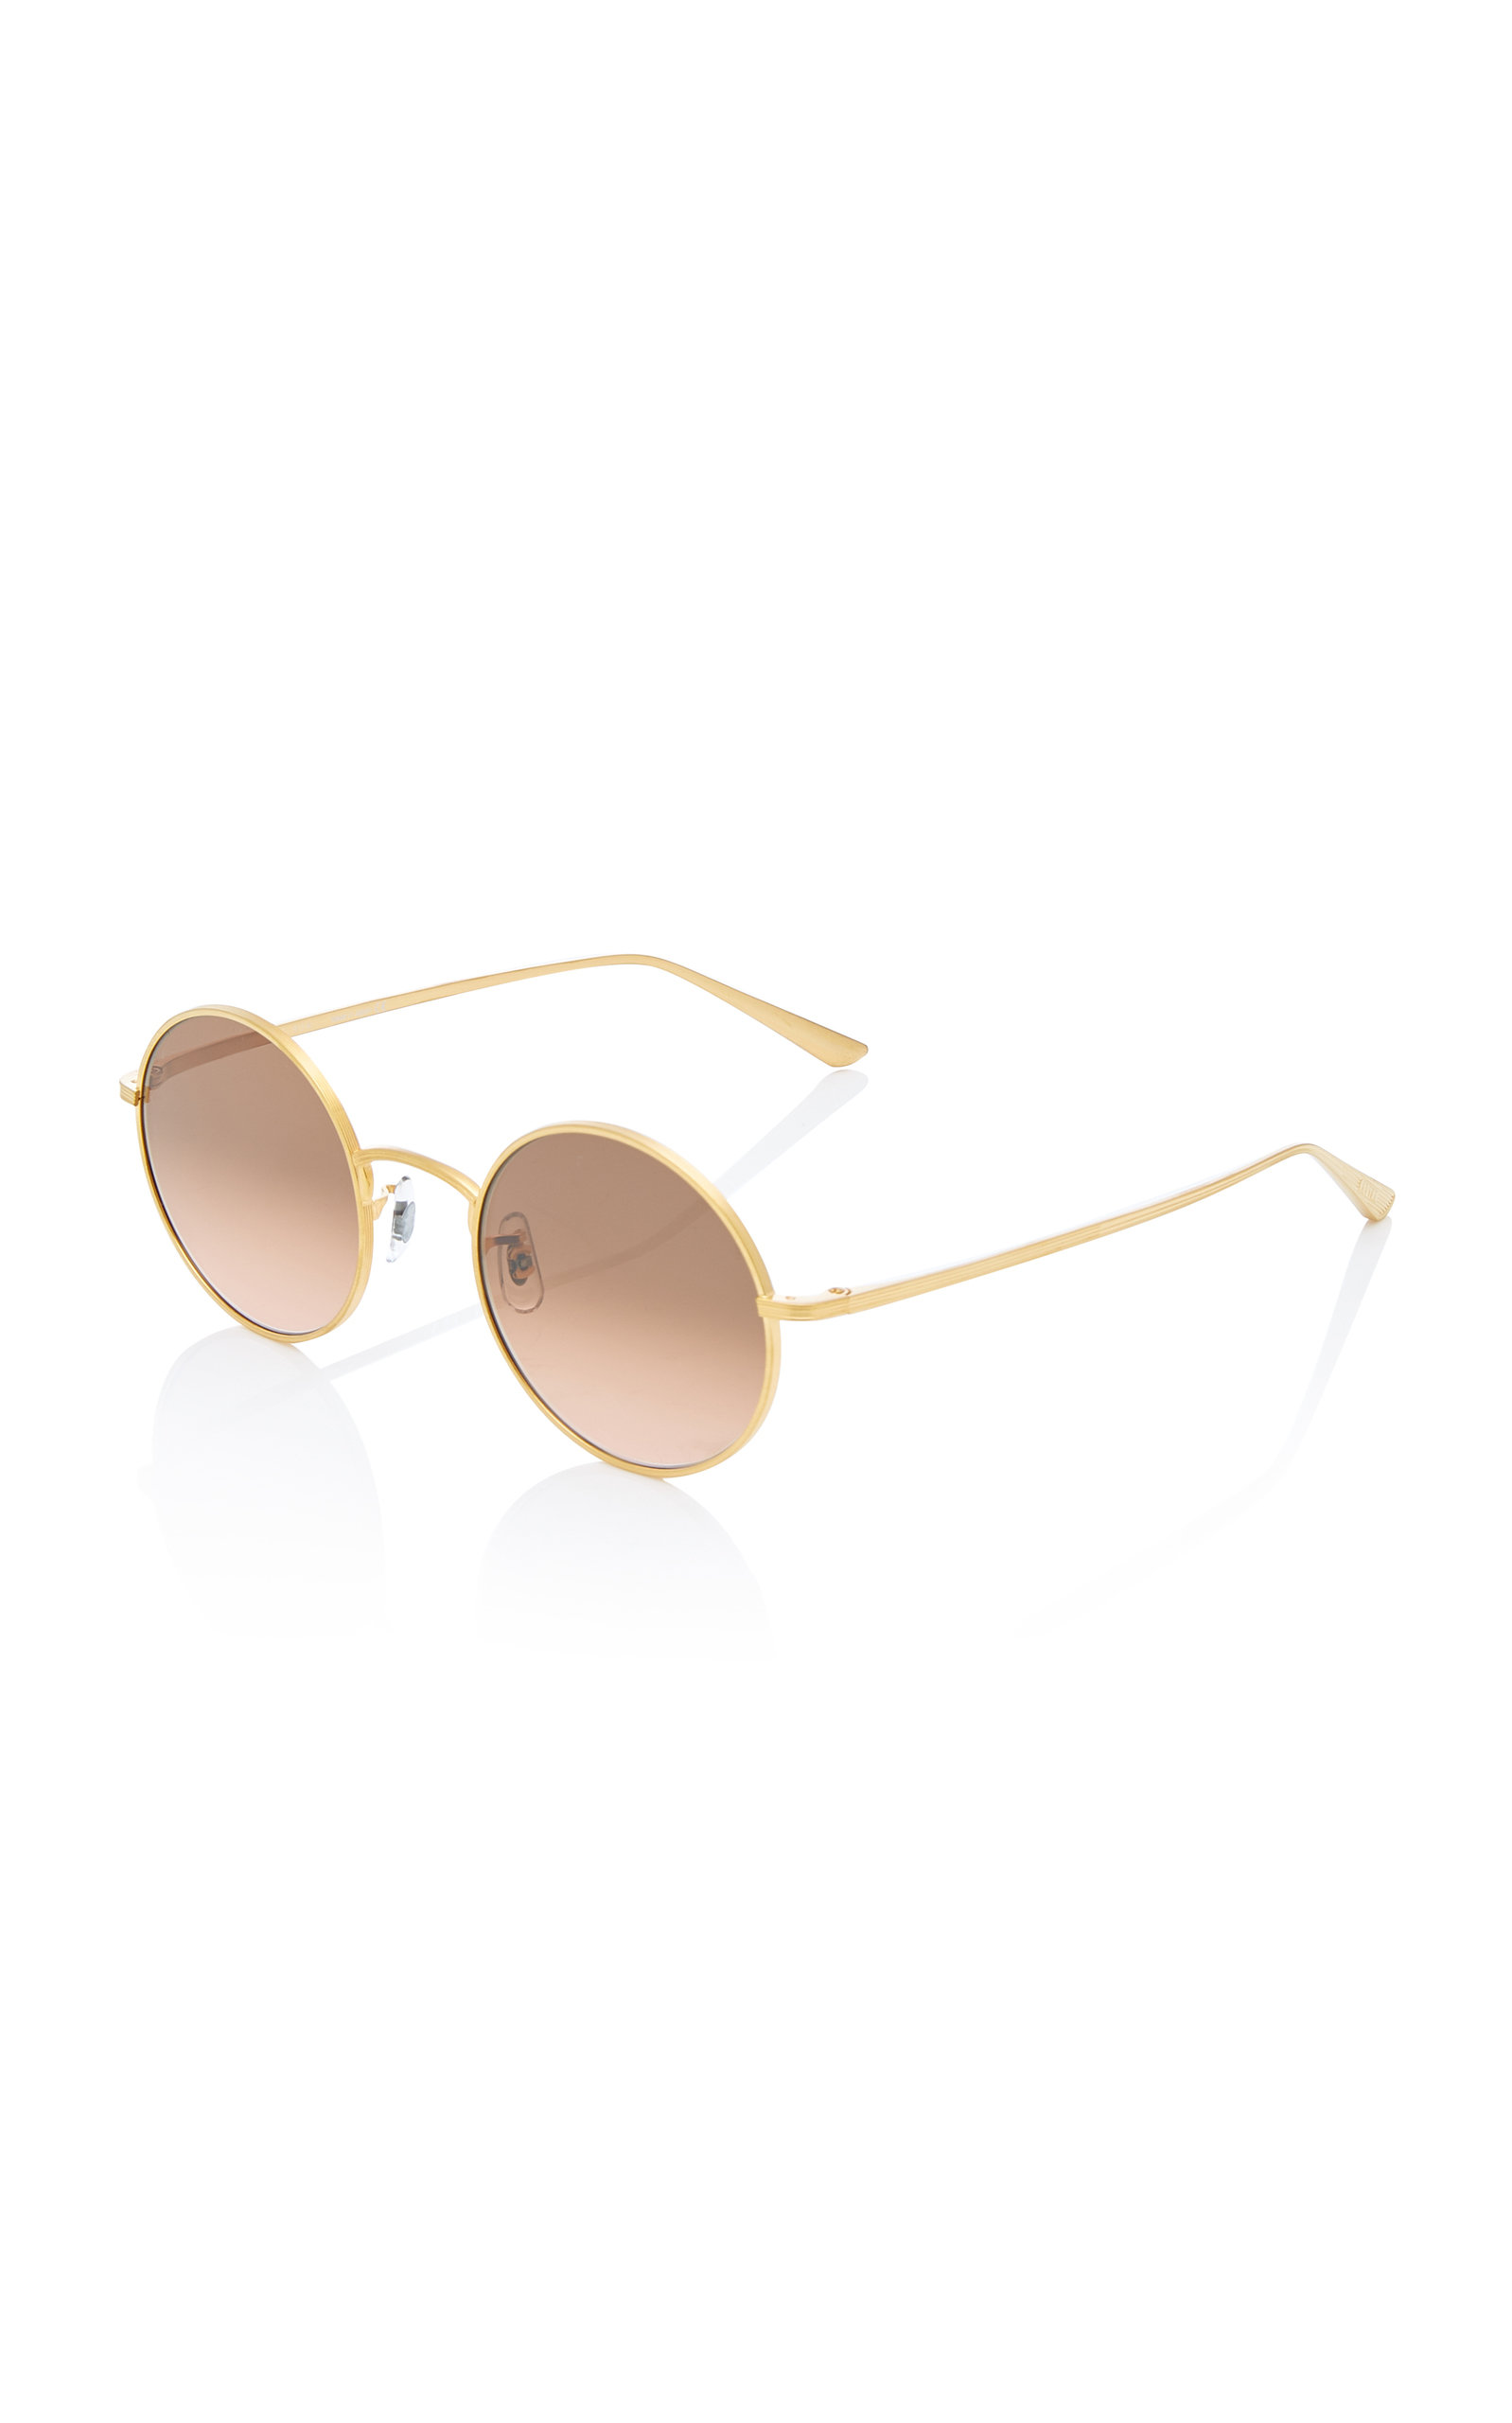 5530b26d22a After Midnight Round Metal Sunglasses by Oliver